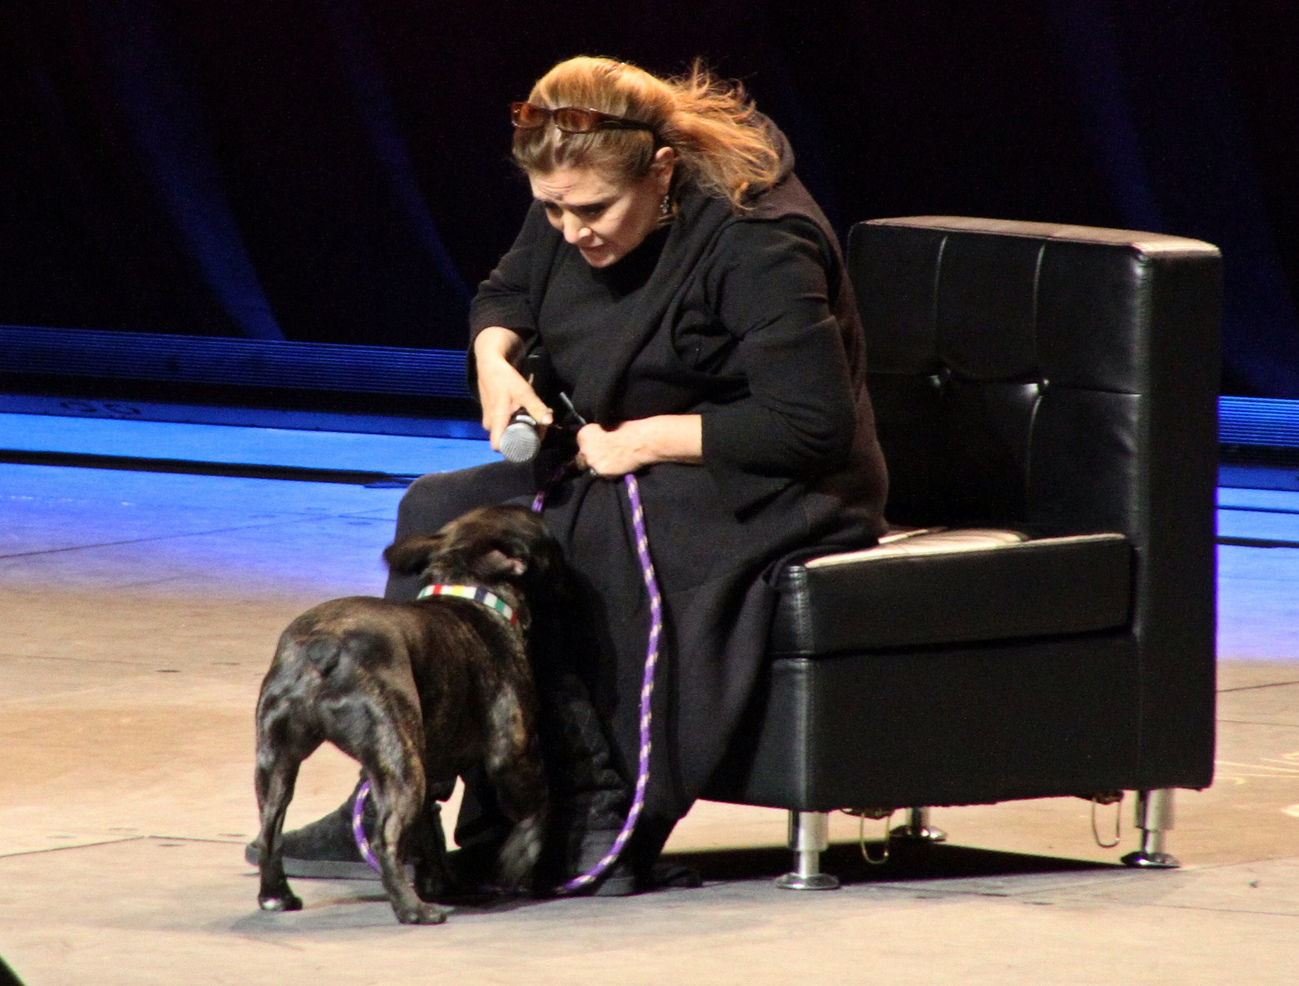 Carrie Fisher and dog